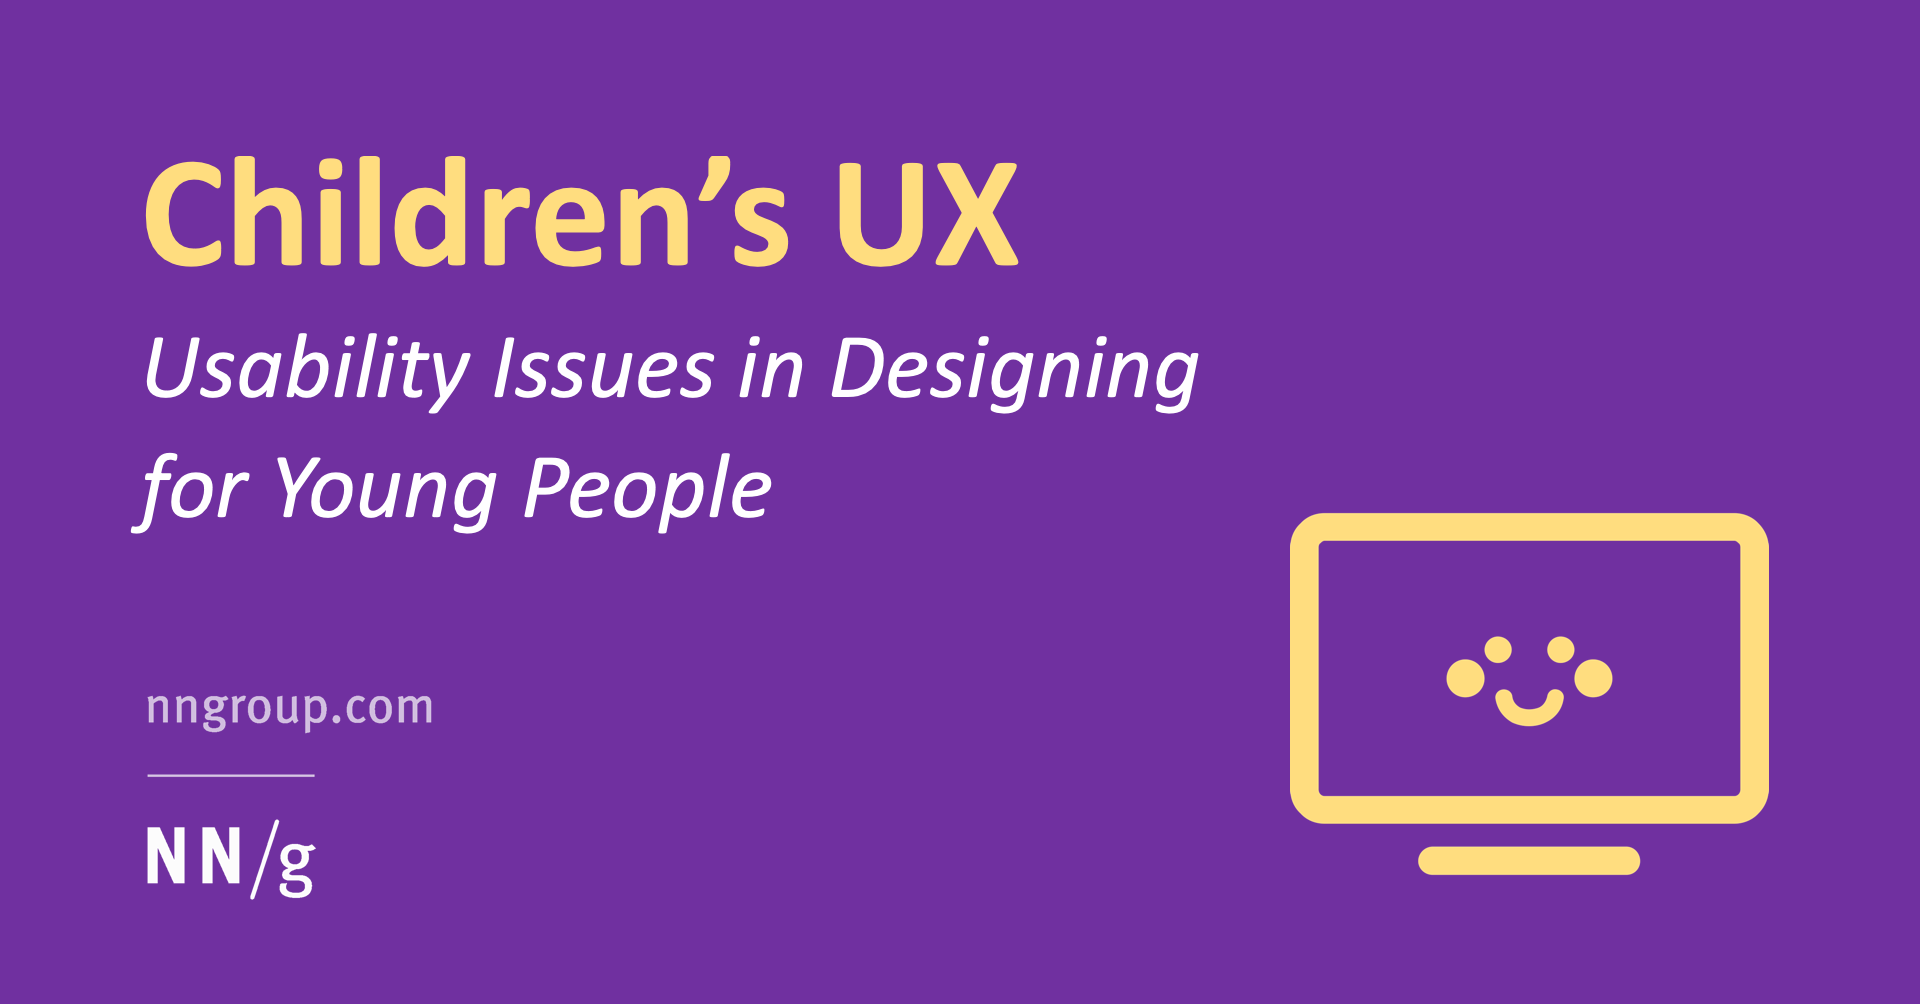 Children's UX: Usability Issues in Designing for Young People